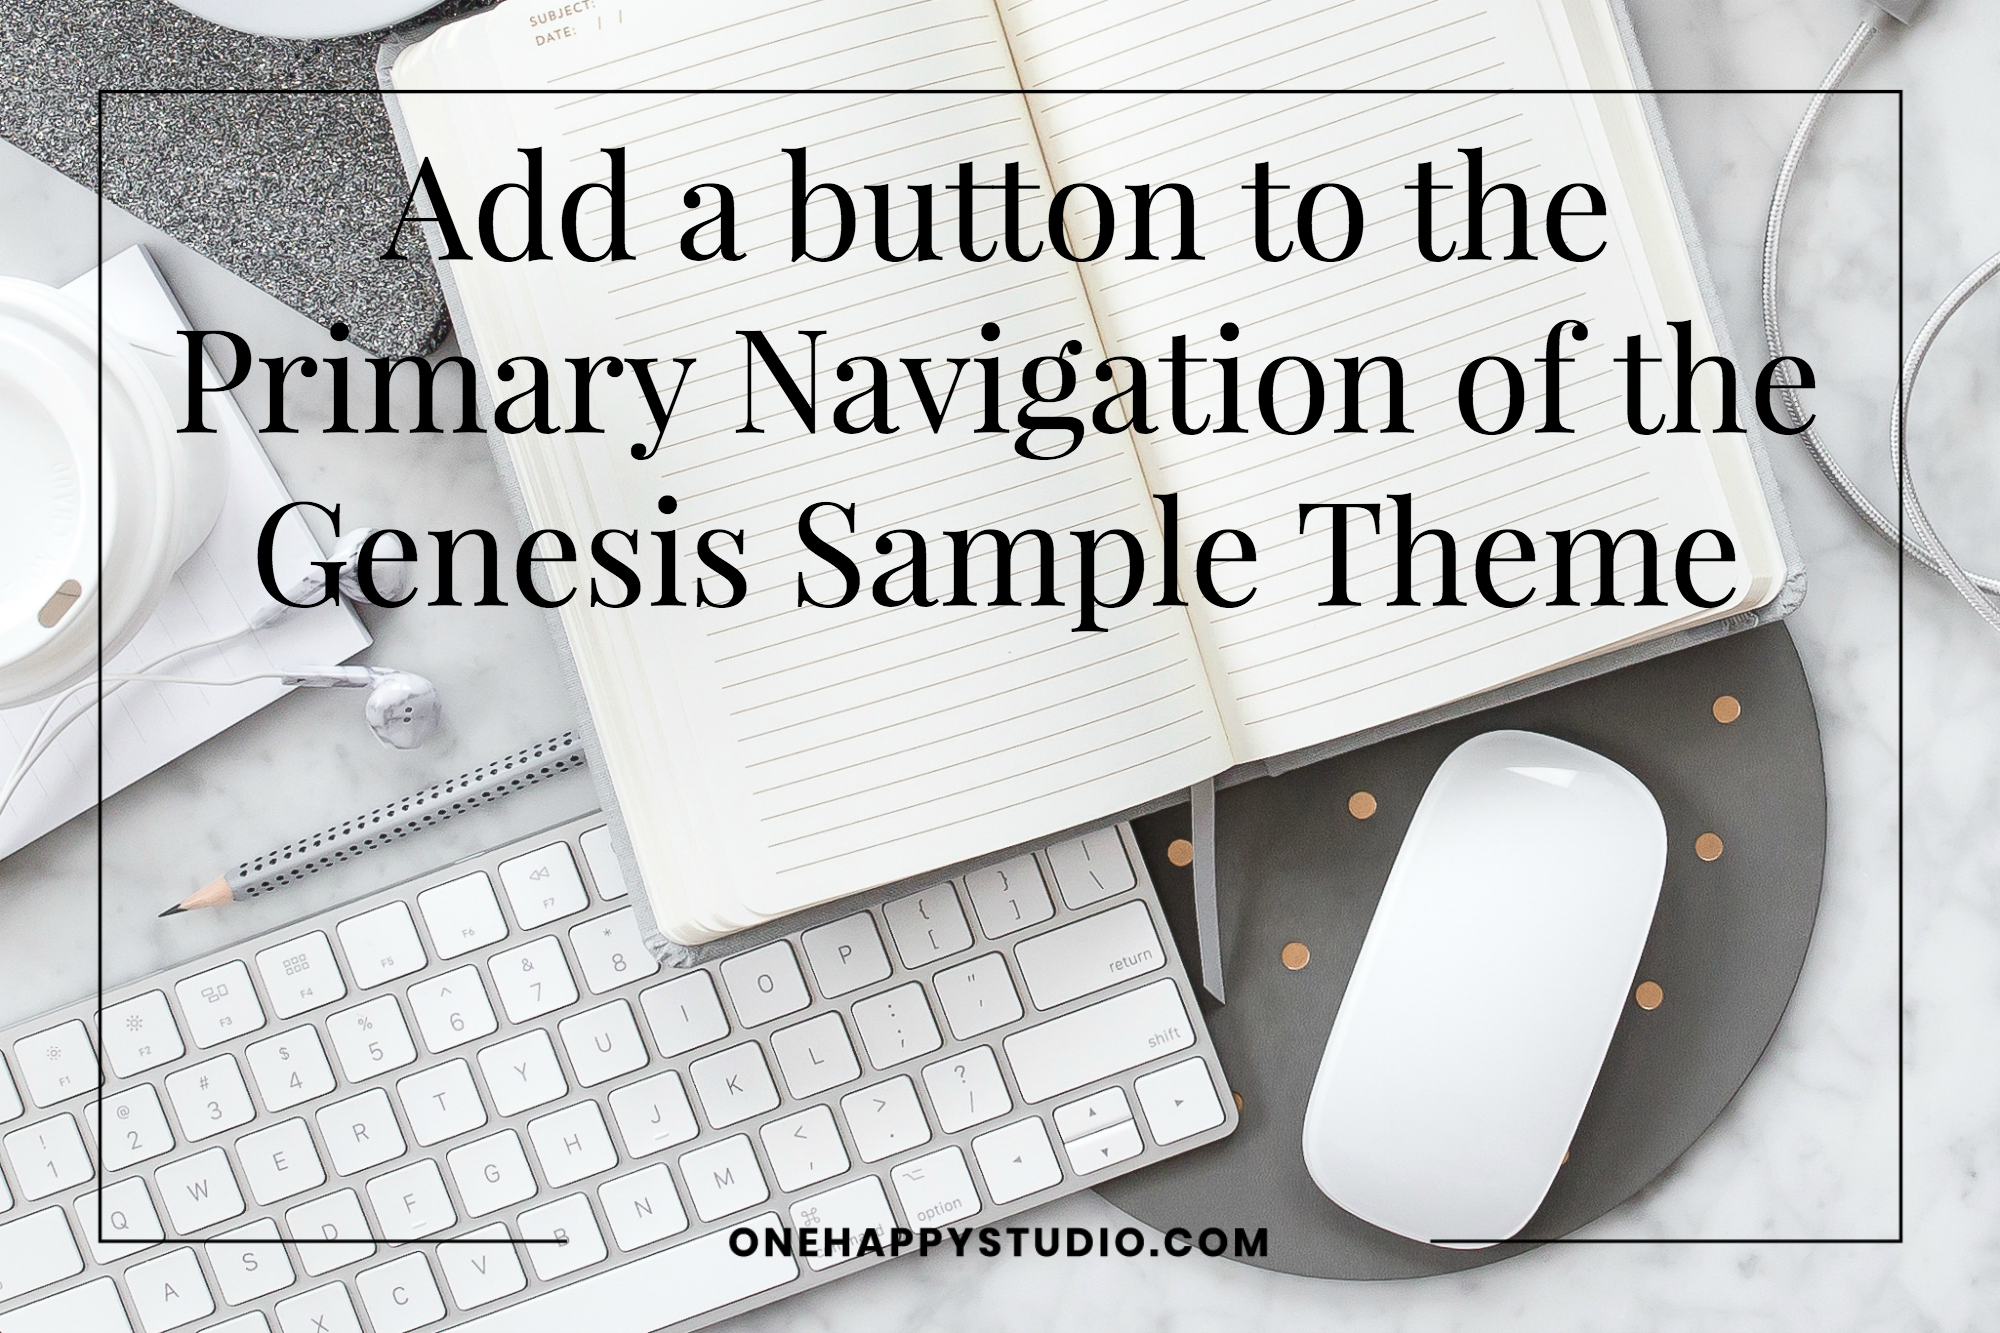 Add a button to the Primary Navigation of the Genesis Sample Theme